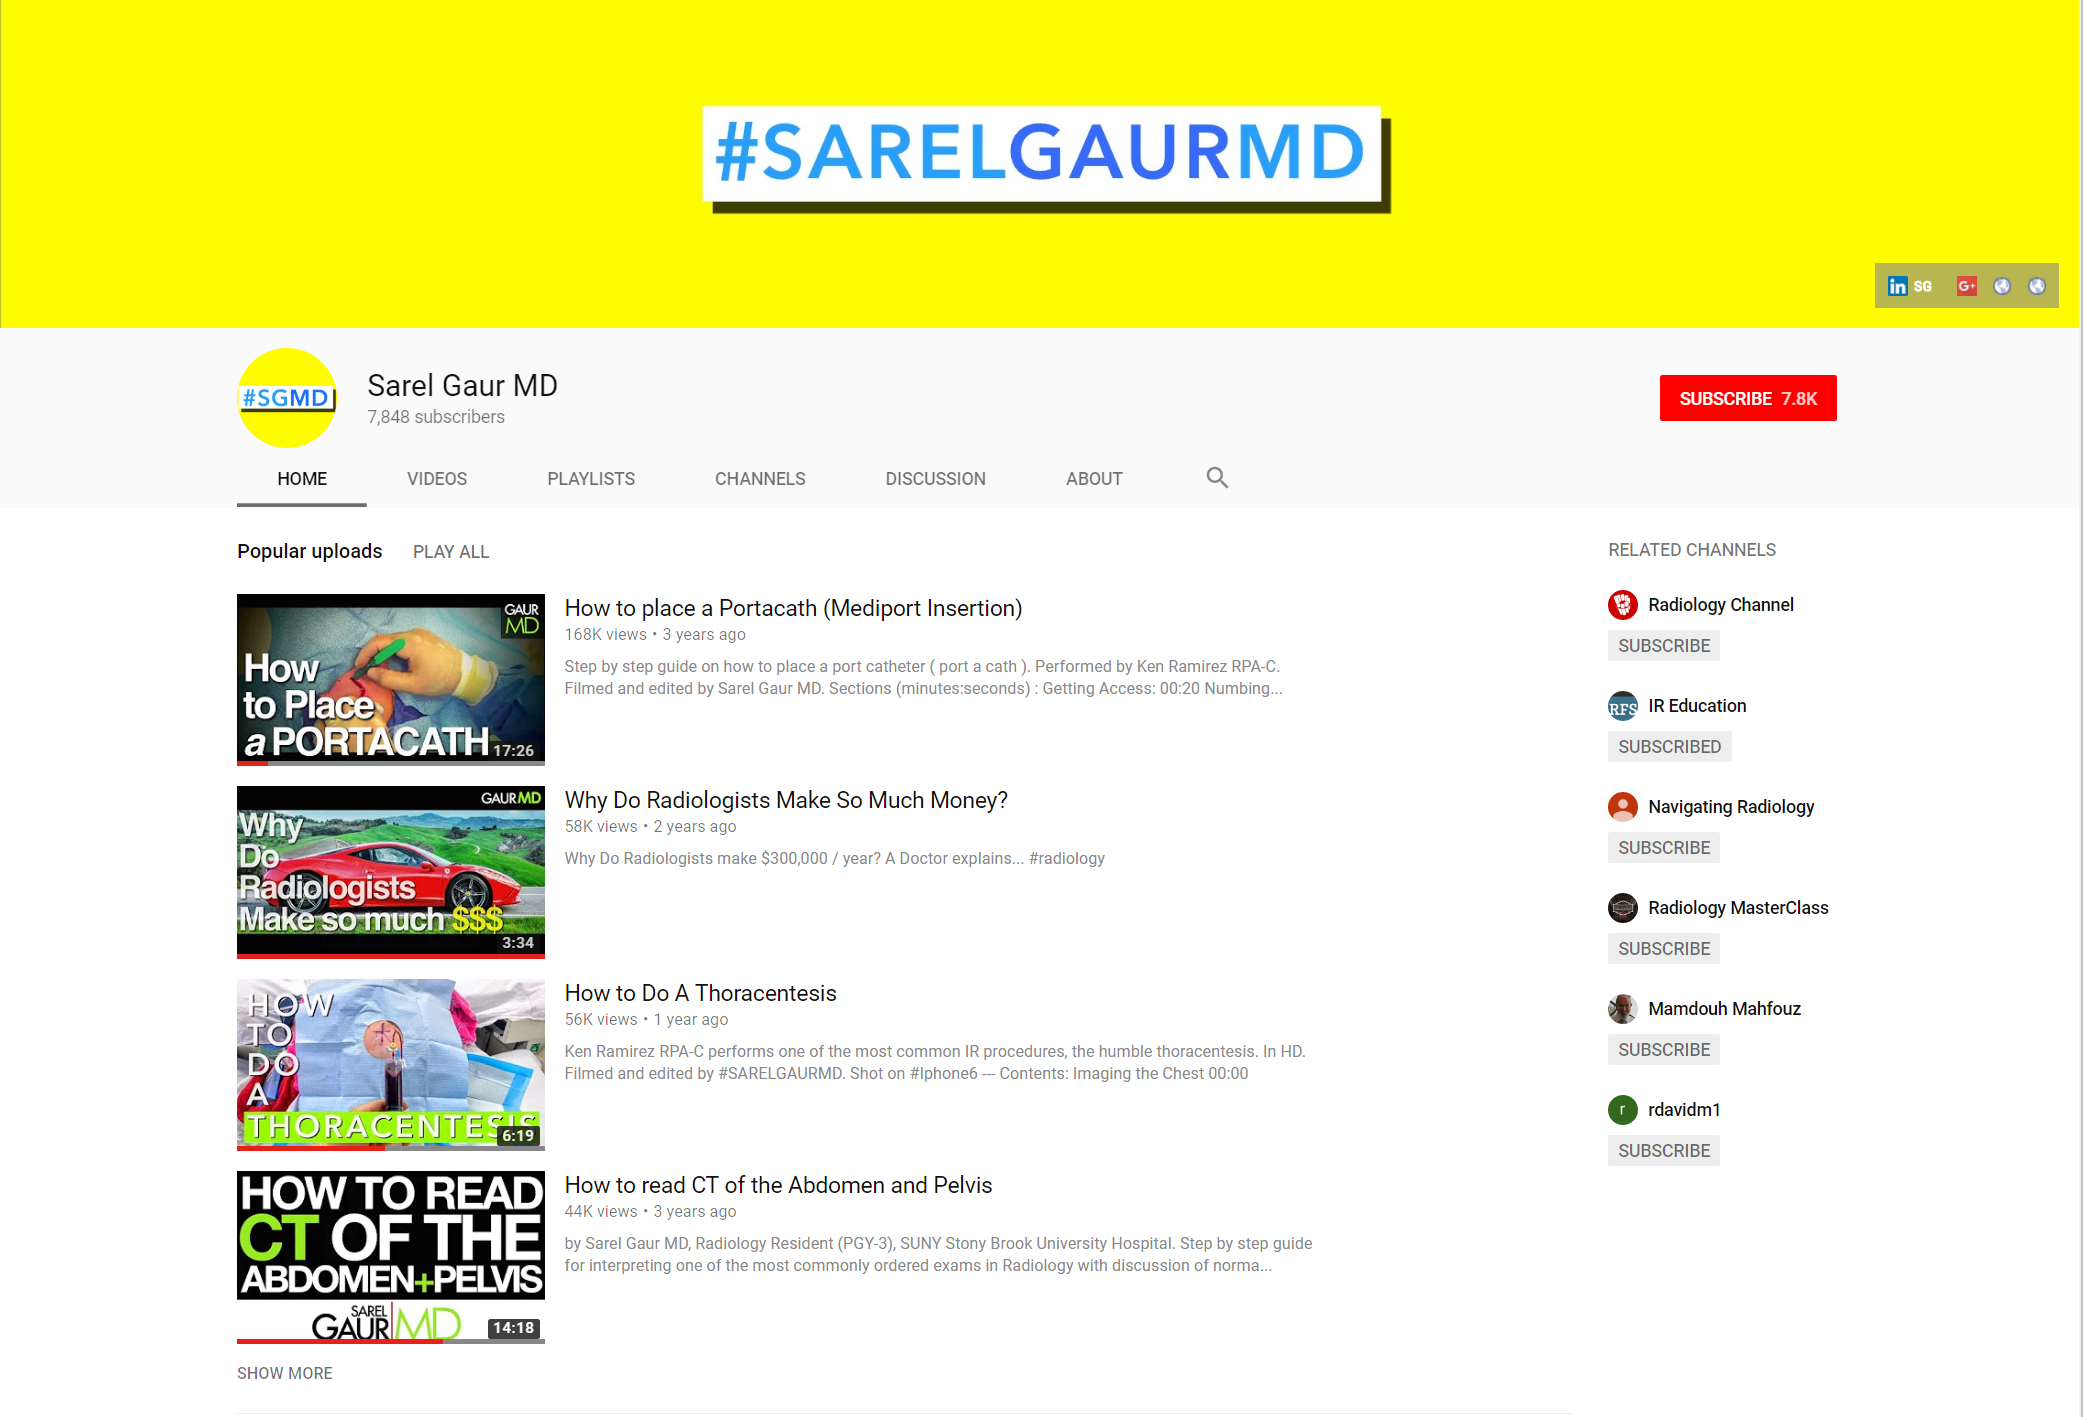 https://www.youtube.com/user/sarelgaurMD